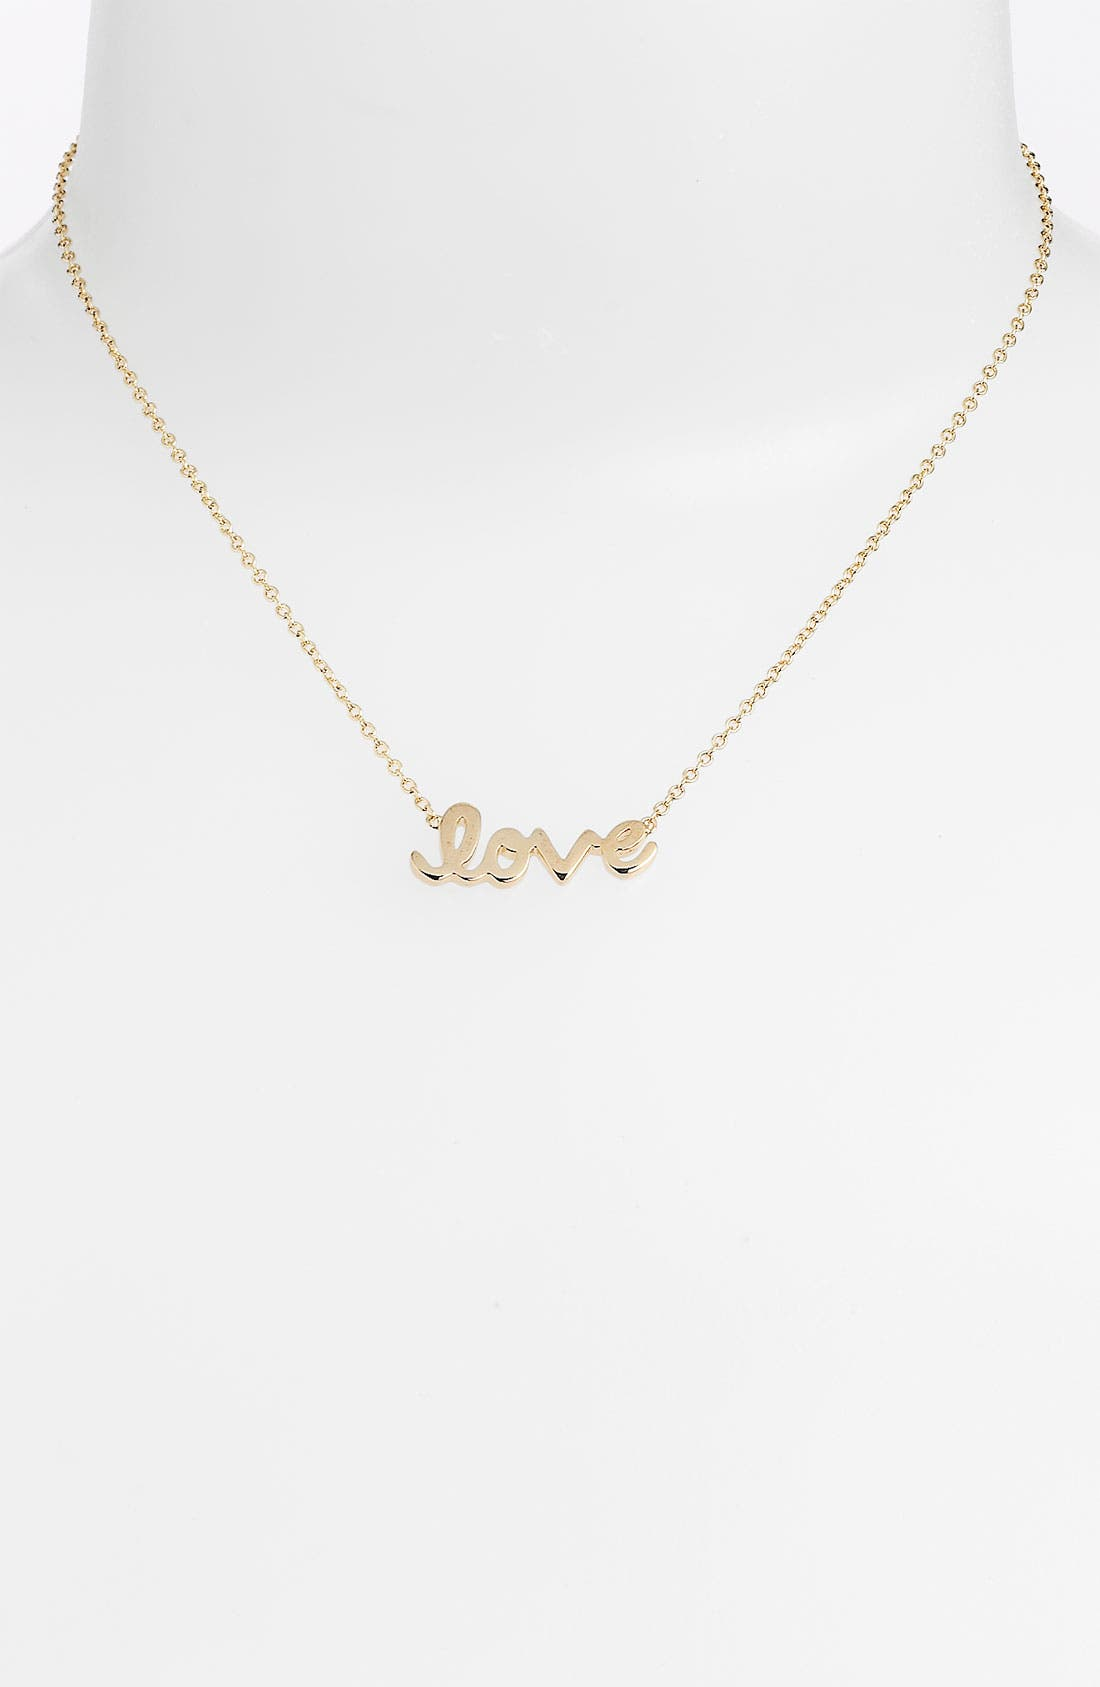 Main Image - Ariella Collection 'Messages - Love' Script Pendant Necklace (Nordstrom Exclusive)